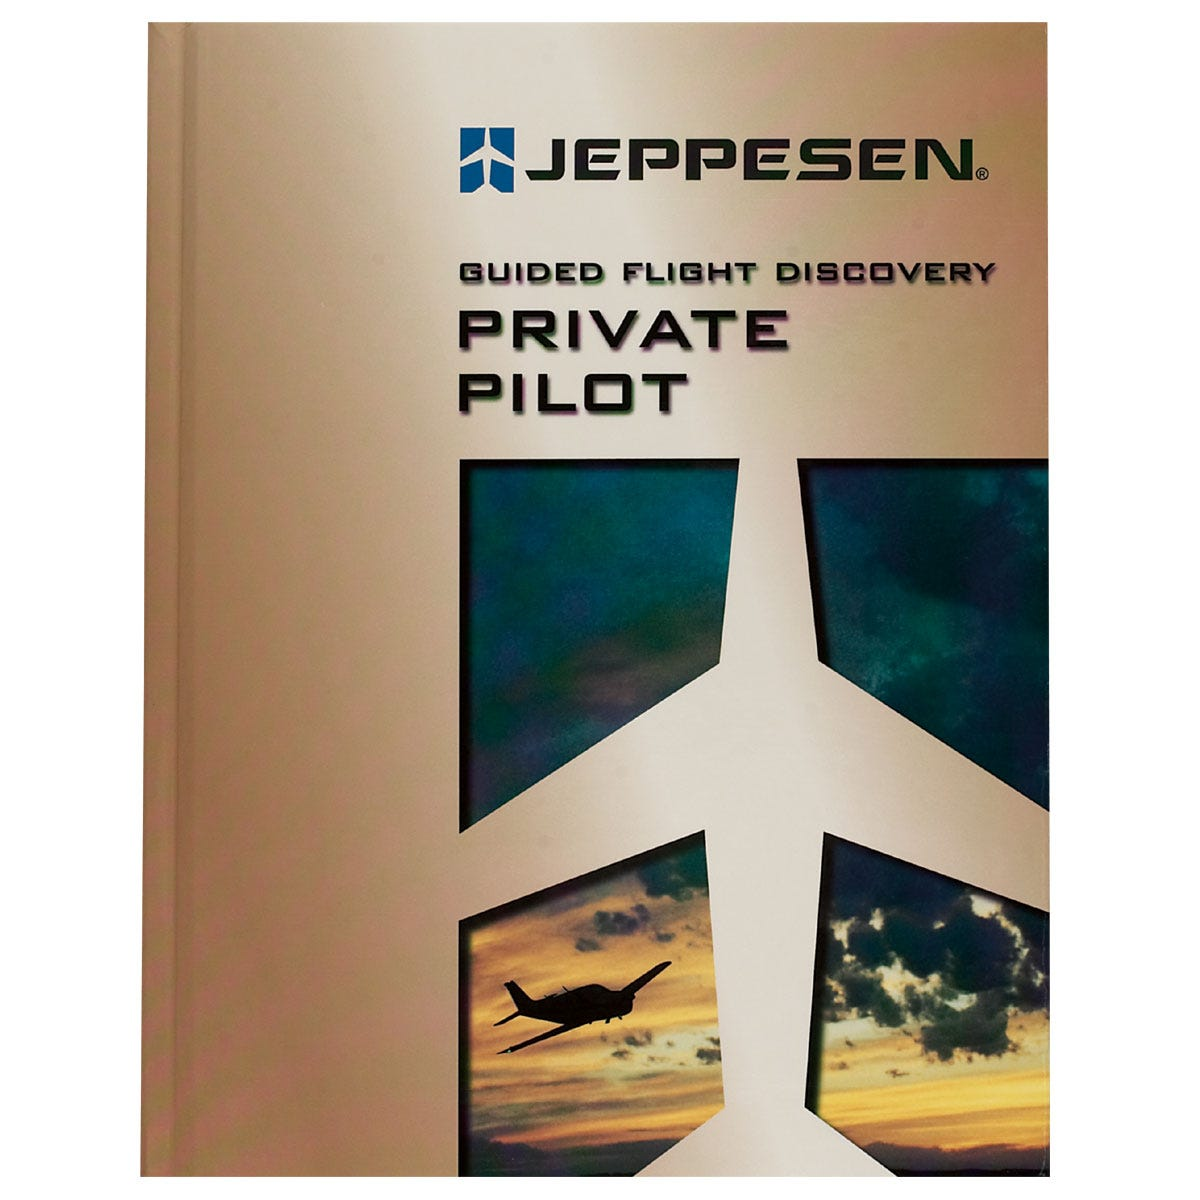 private pilot jeppesen from sporty s pilot shop rh sportys com jeppesen private pilot manual download jeppesen private pilot manual free pdf